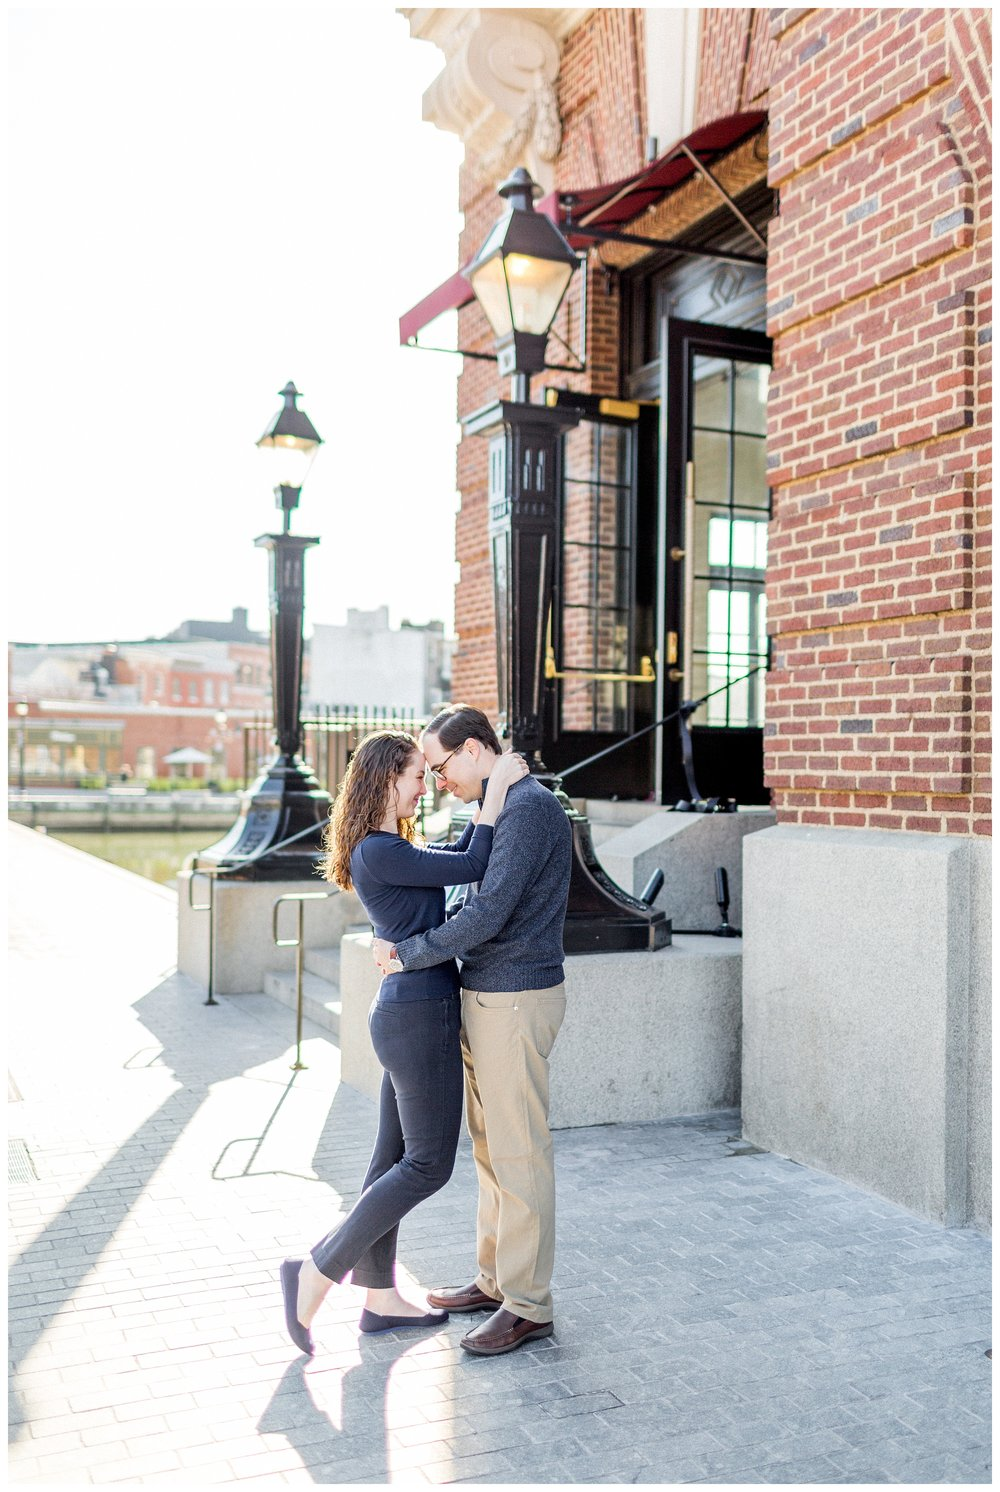 Baltimore Engagement Pictures | Maryland Wedding Photographer Kir Tuben_0040.jpg